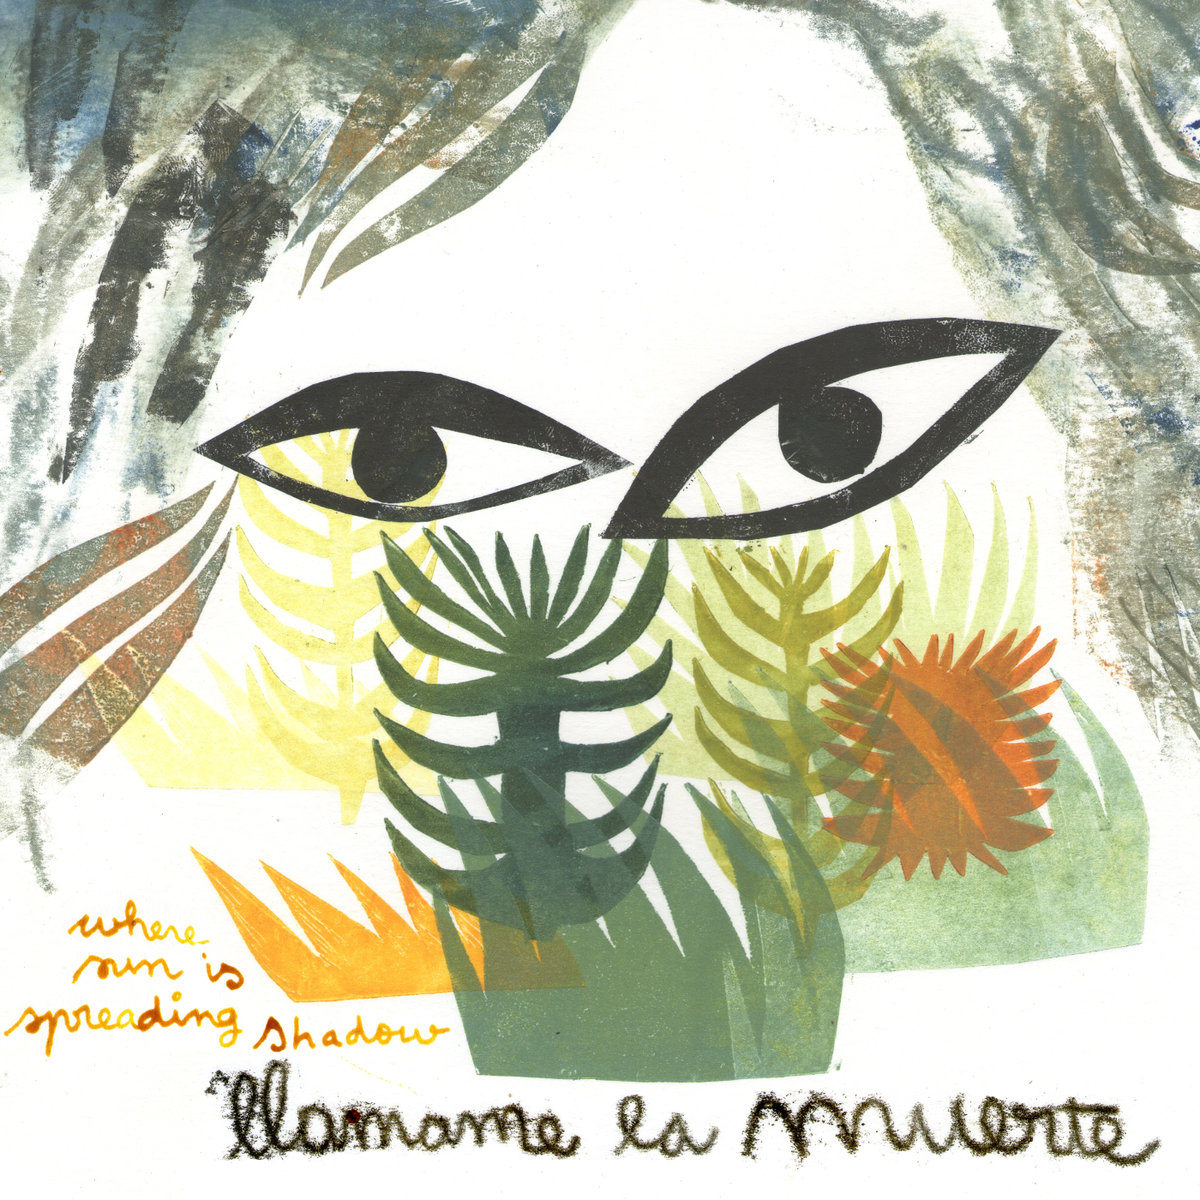 LLAMAME LA MUERTE -  Where Sun Is Spreading Shadow